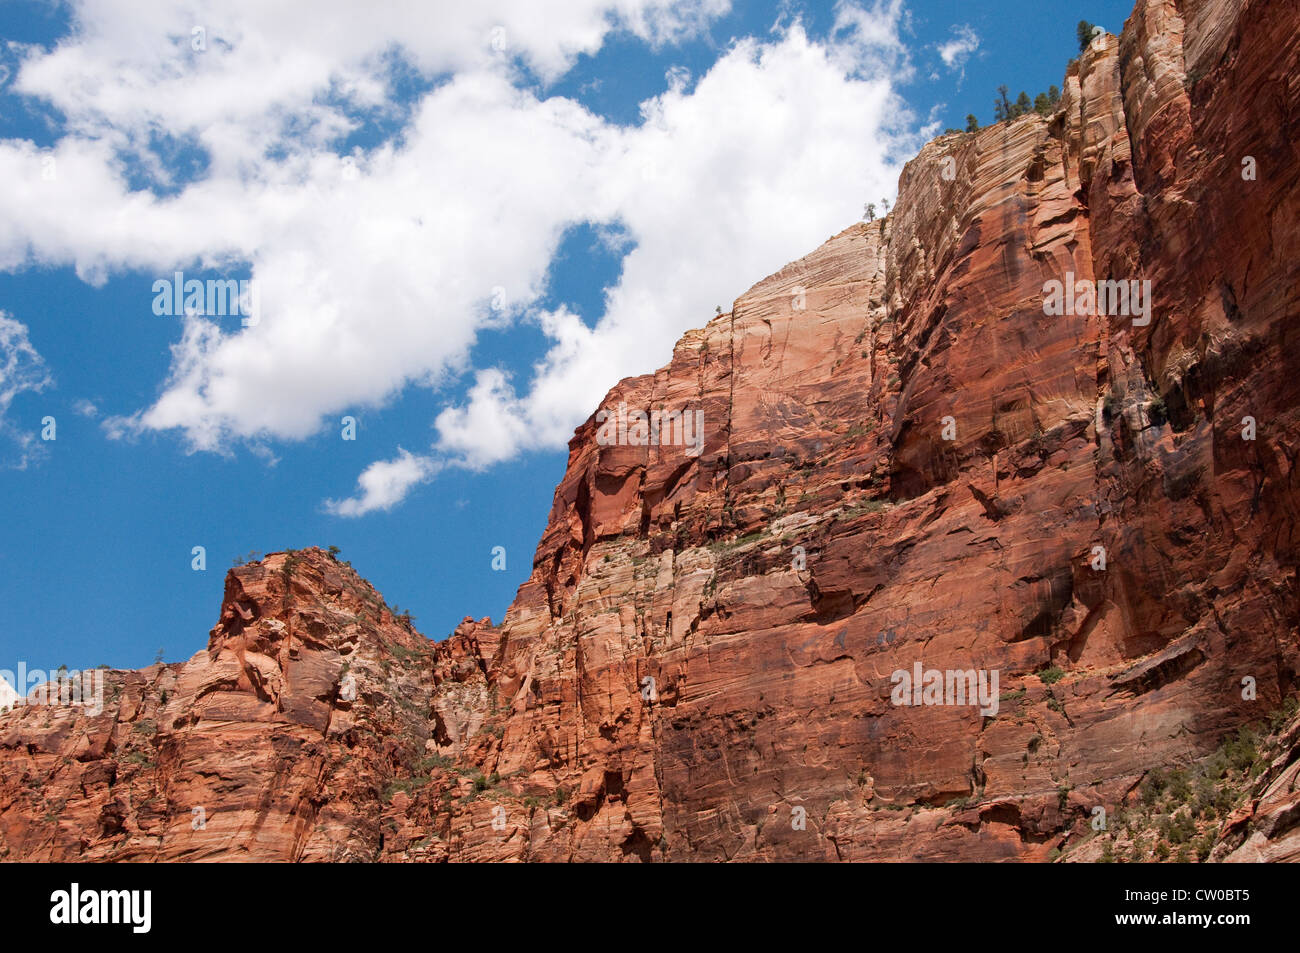 The Grotto Zion Stock Photos & The Grotto Zion Stock Images - Alamy